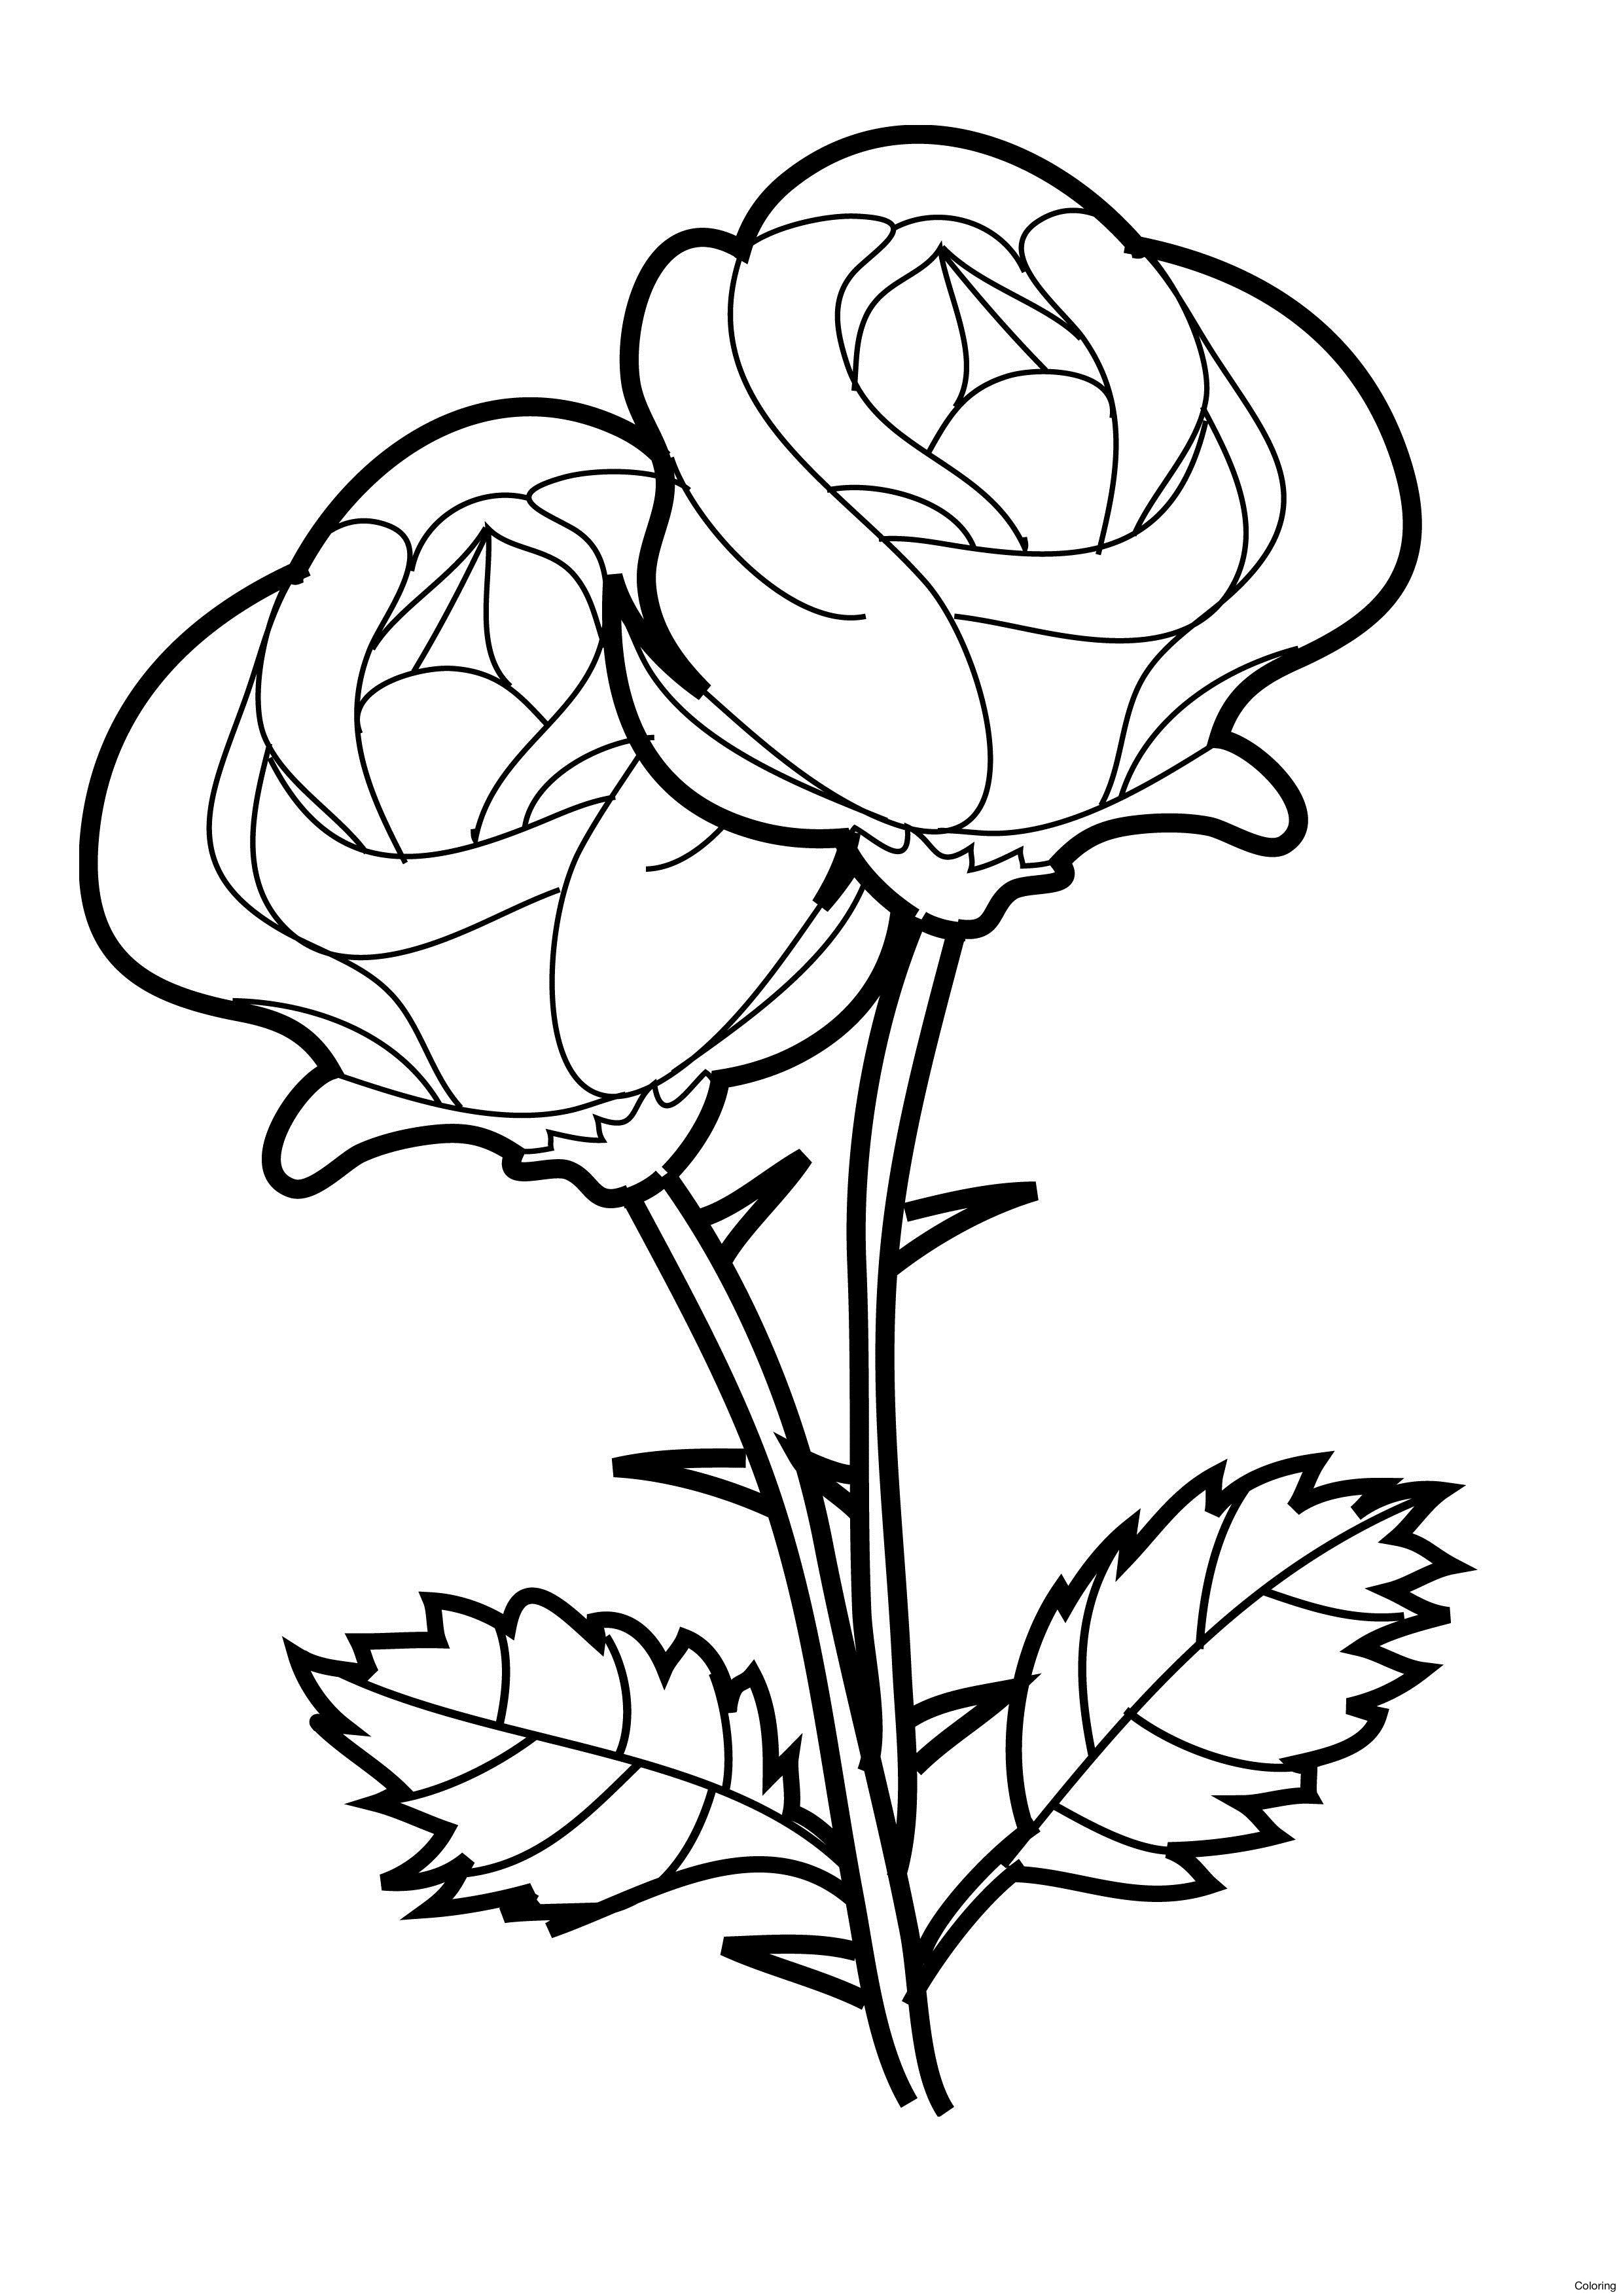 2480x3508 Images Of Simple And Good Drawings For Kids 10 How To Draw A Rose